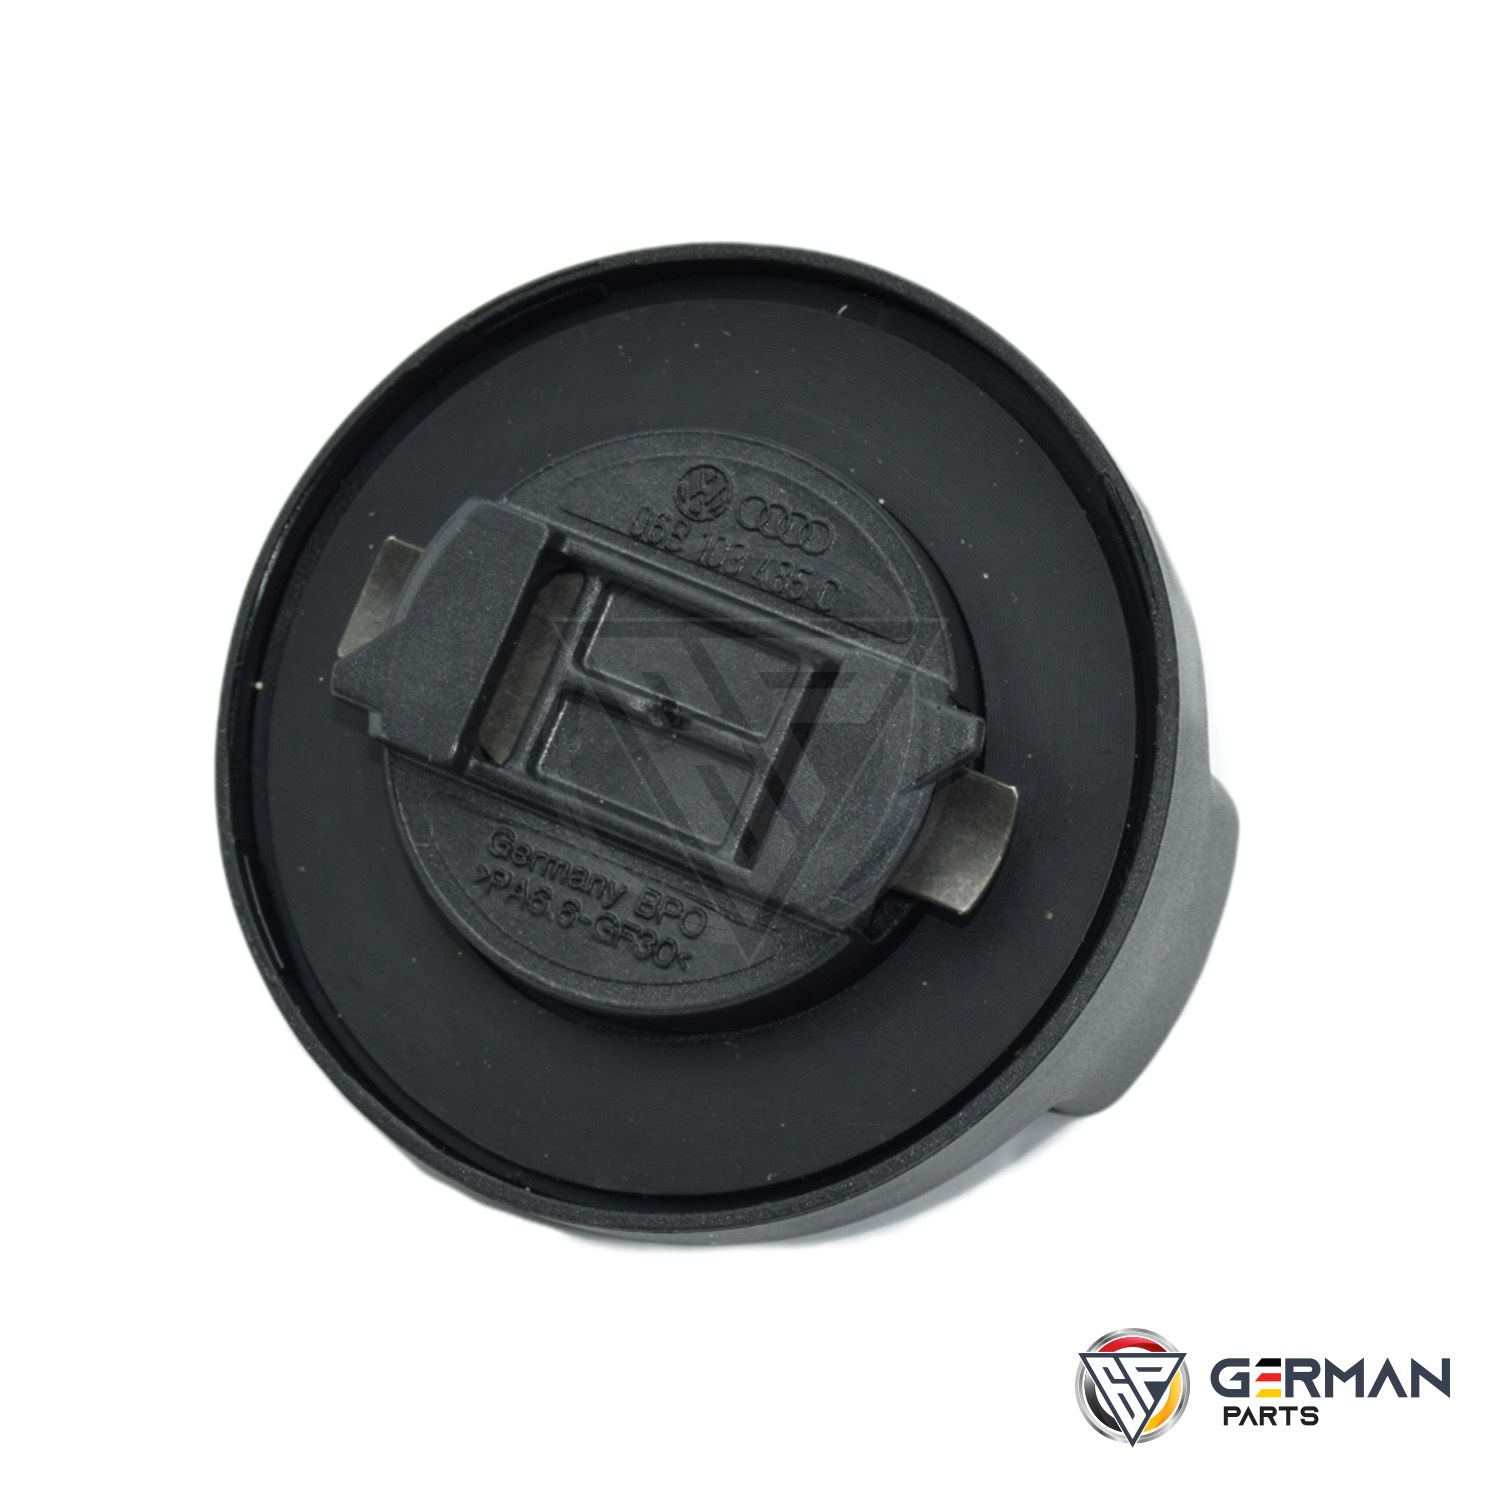 Buy Genuine Audi/Volkswagen Oil Cap 06B103485C - German Parts